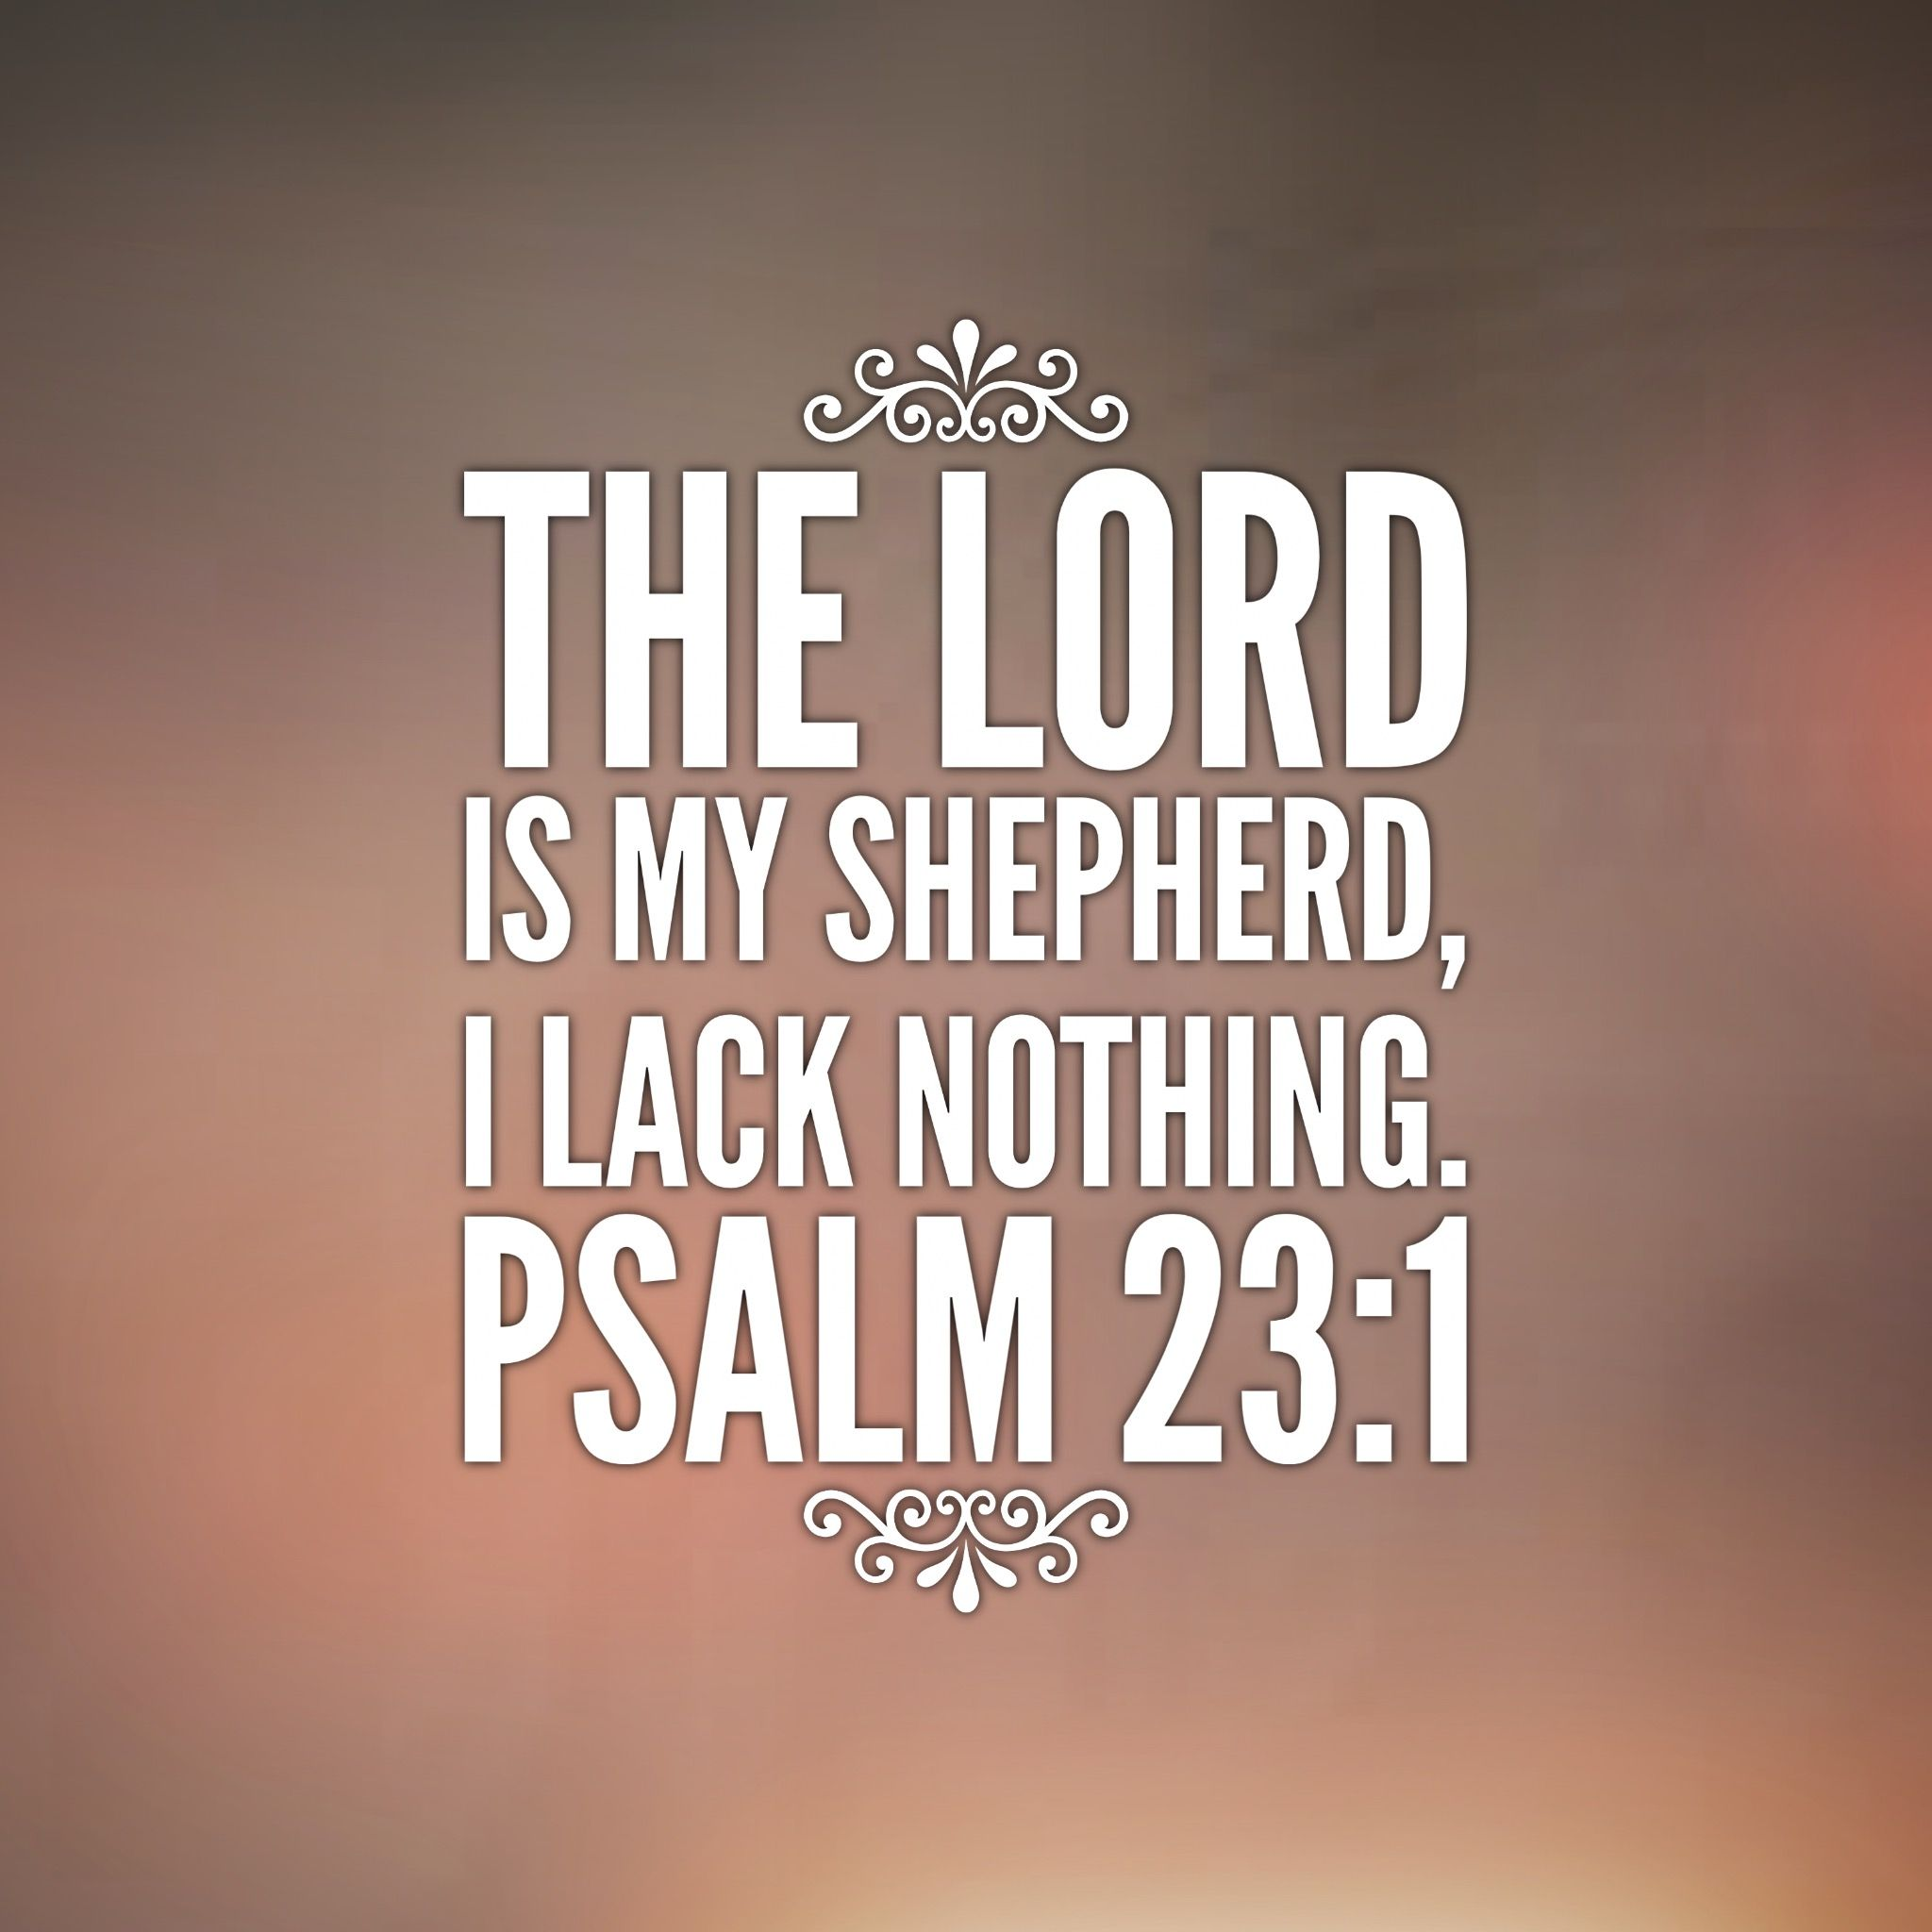 The LORD is my shepherd, I lack nothing. Psalm 23:1